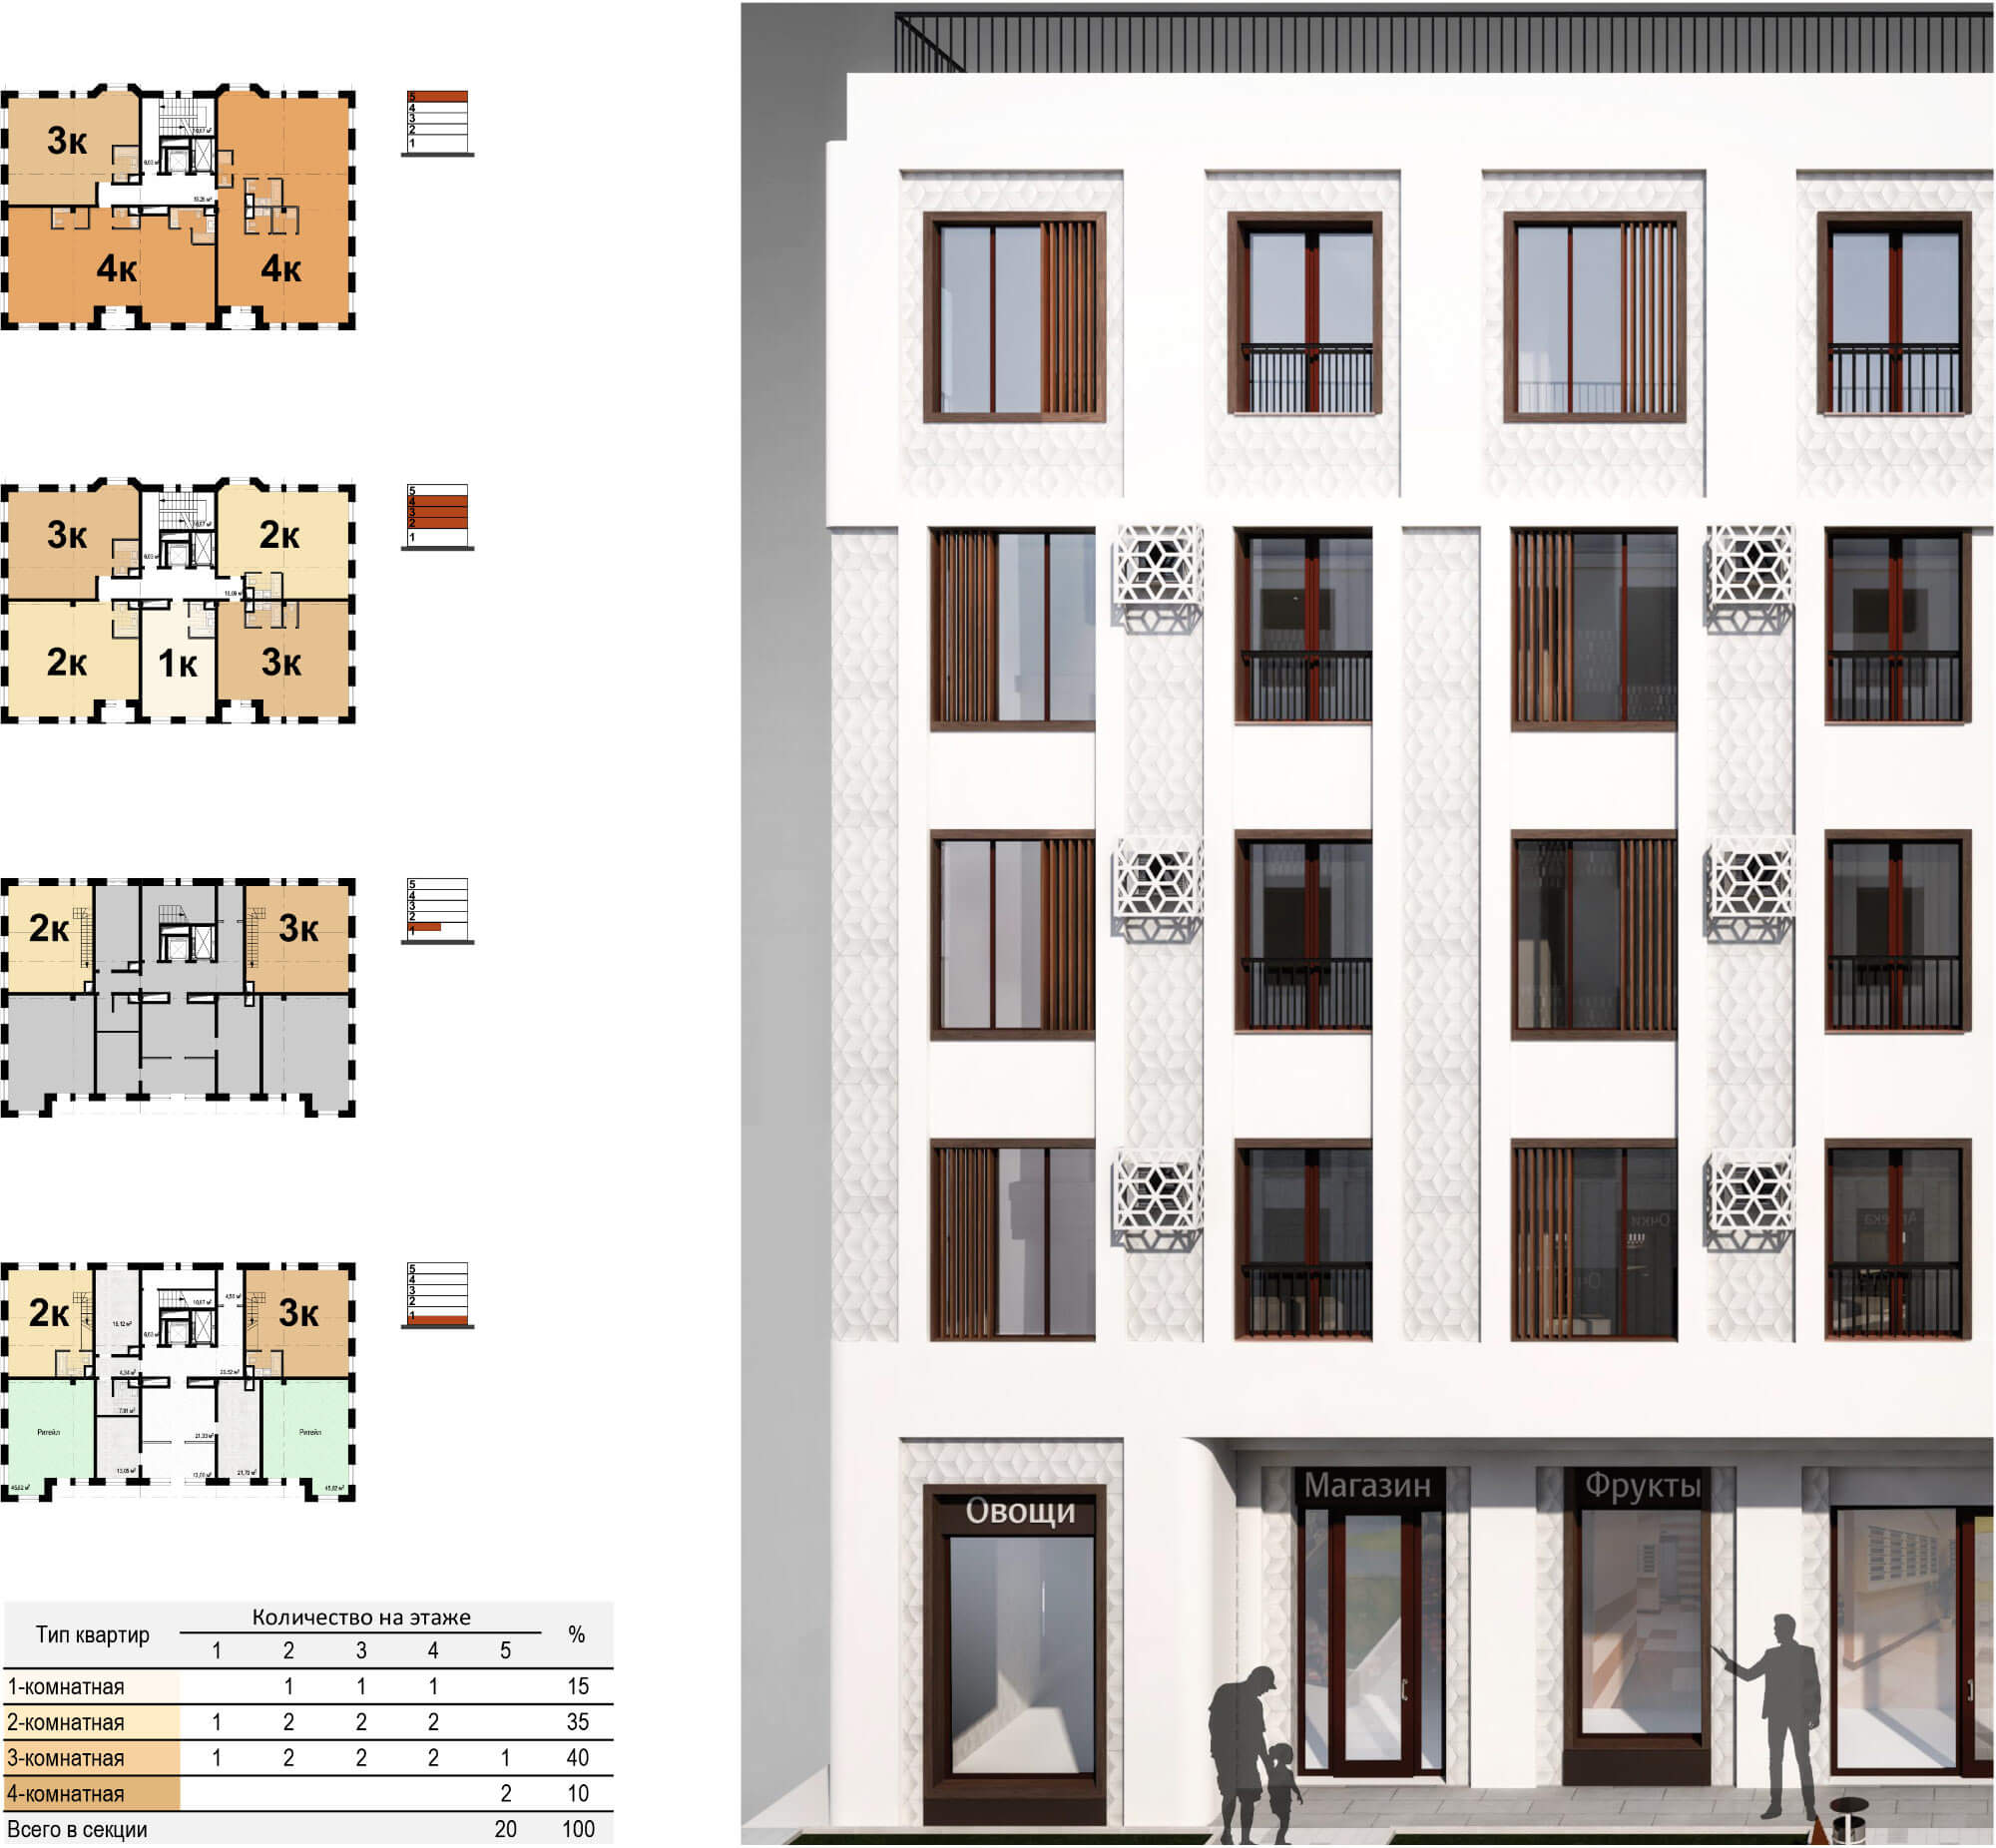 Types Of Apartment Buildings: Residential Area Concept